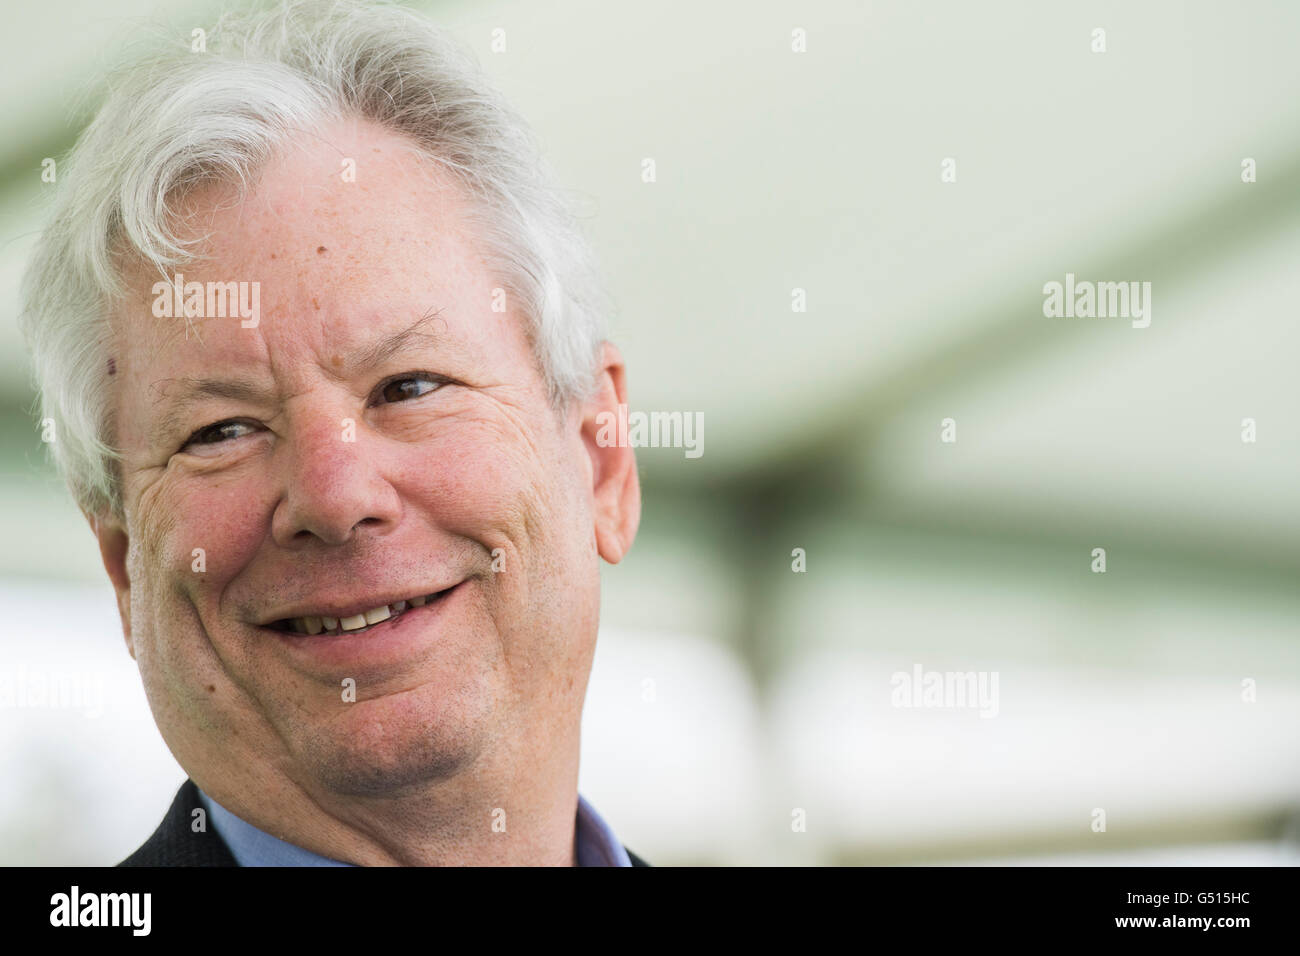 richard-h-thaler-american-economist-and-